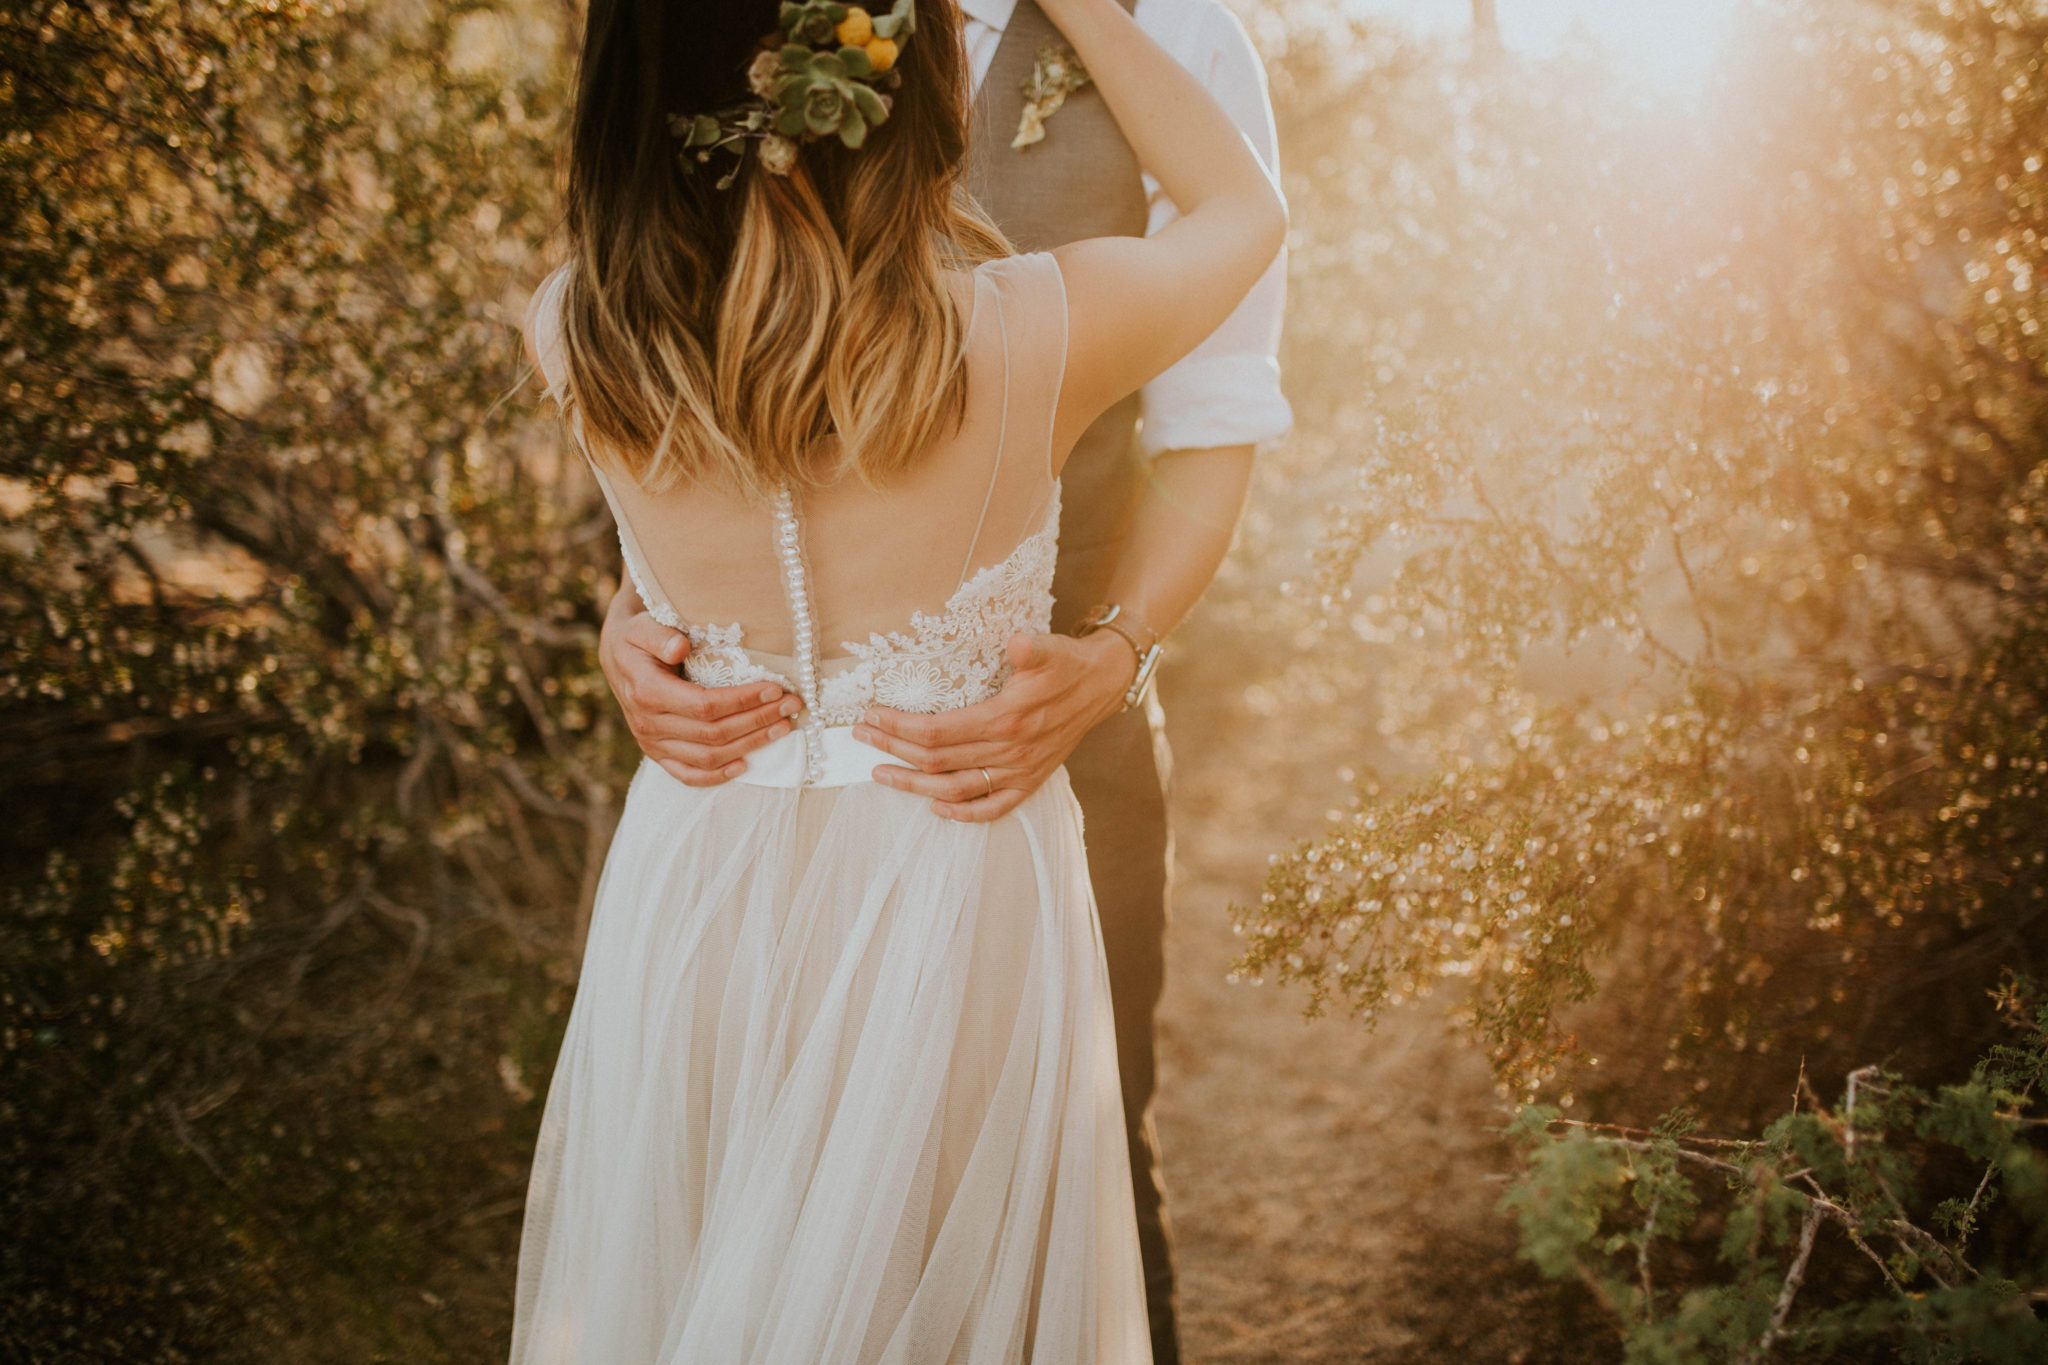 Mandy & Joey Joshua Tree Elopement California Wedding Photographer-222